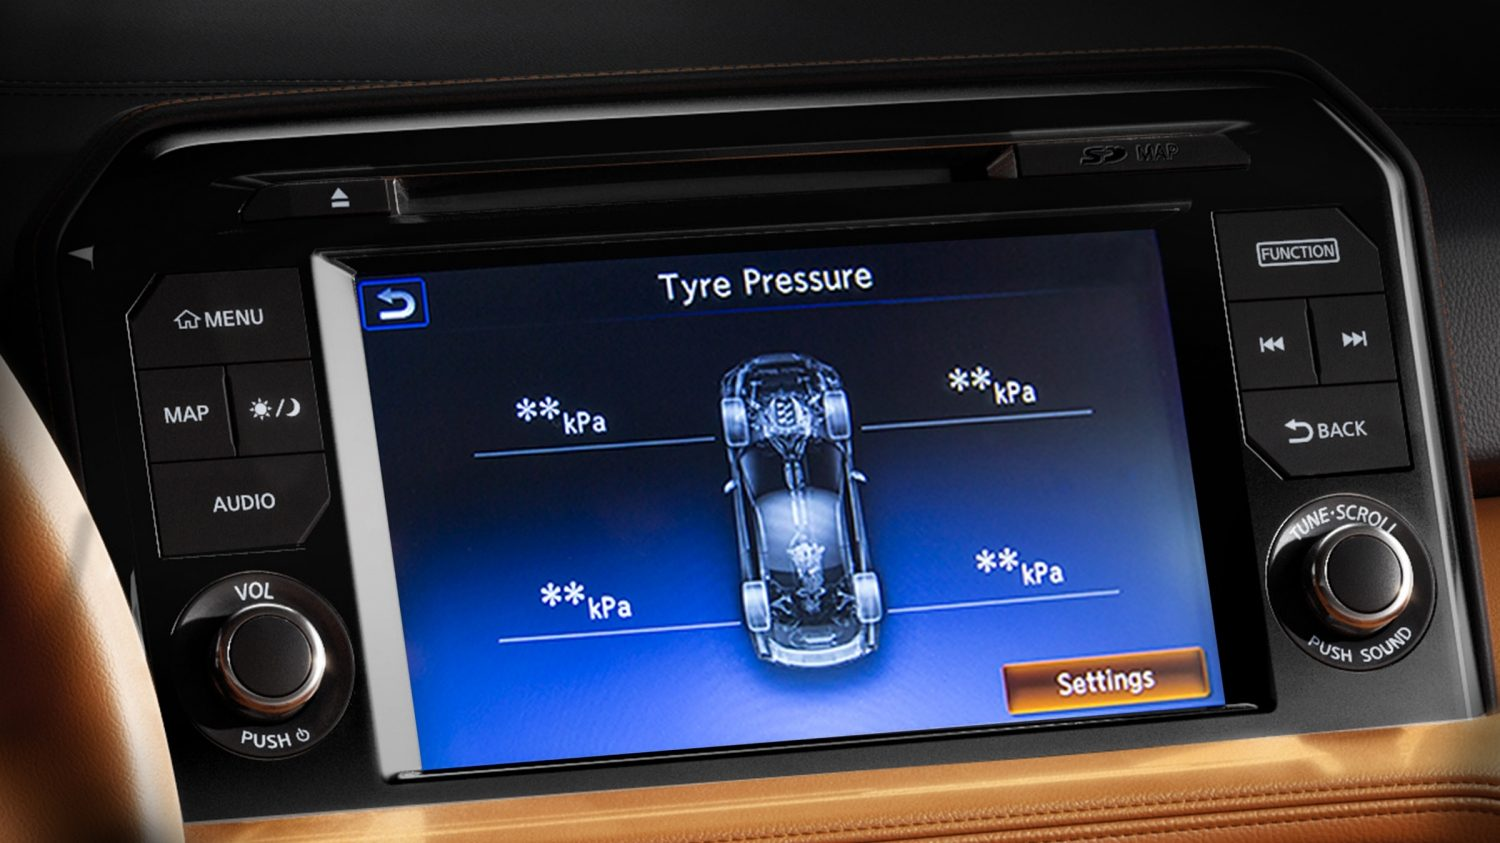 Nissan GT-R Tyre Pressure Monitoring System screen display